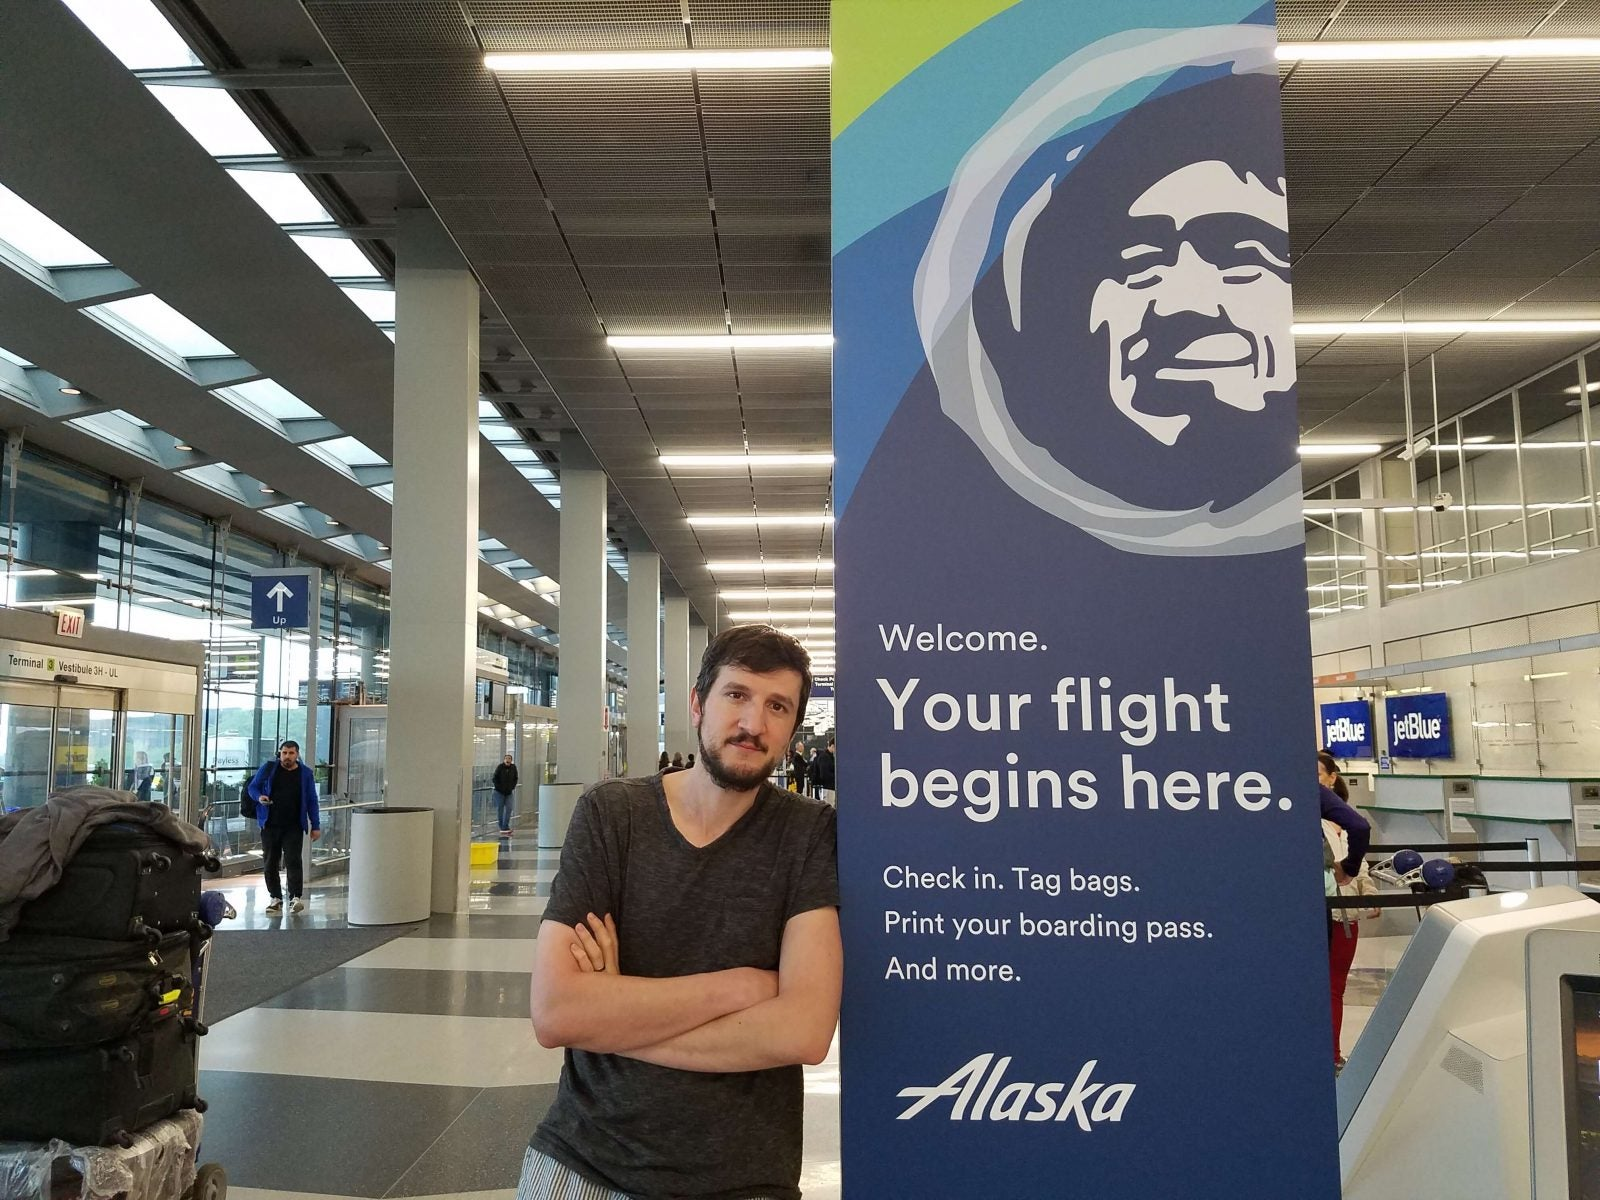 The Everyday Person's Guide to Upgrading With Miles! This Week: Alaska Airlines!